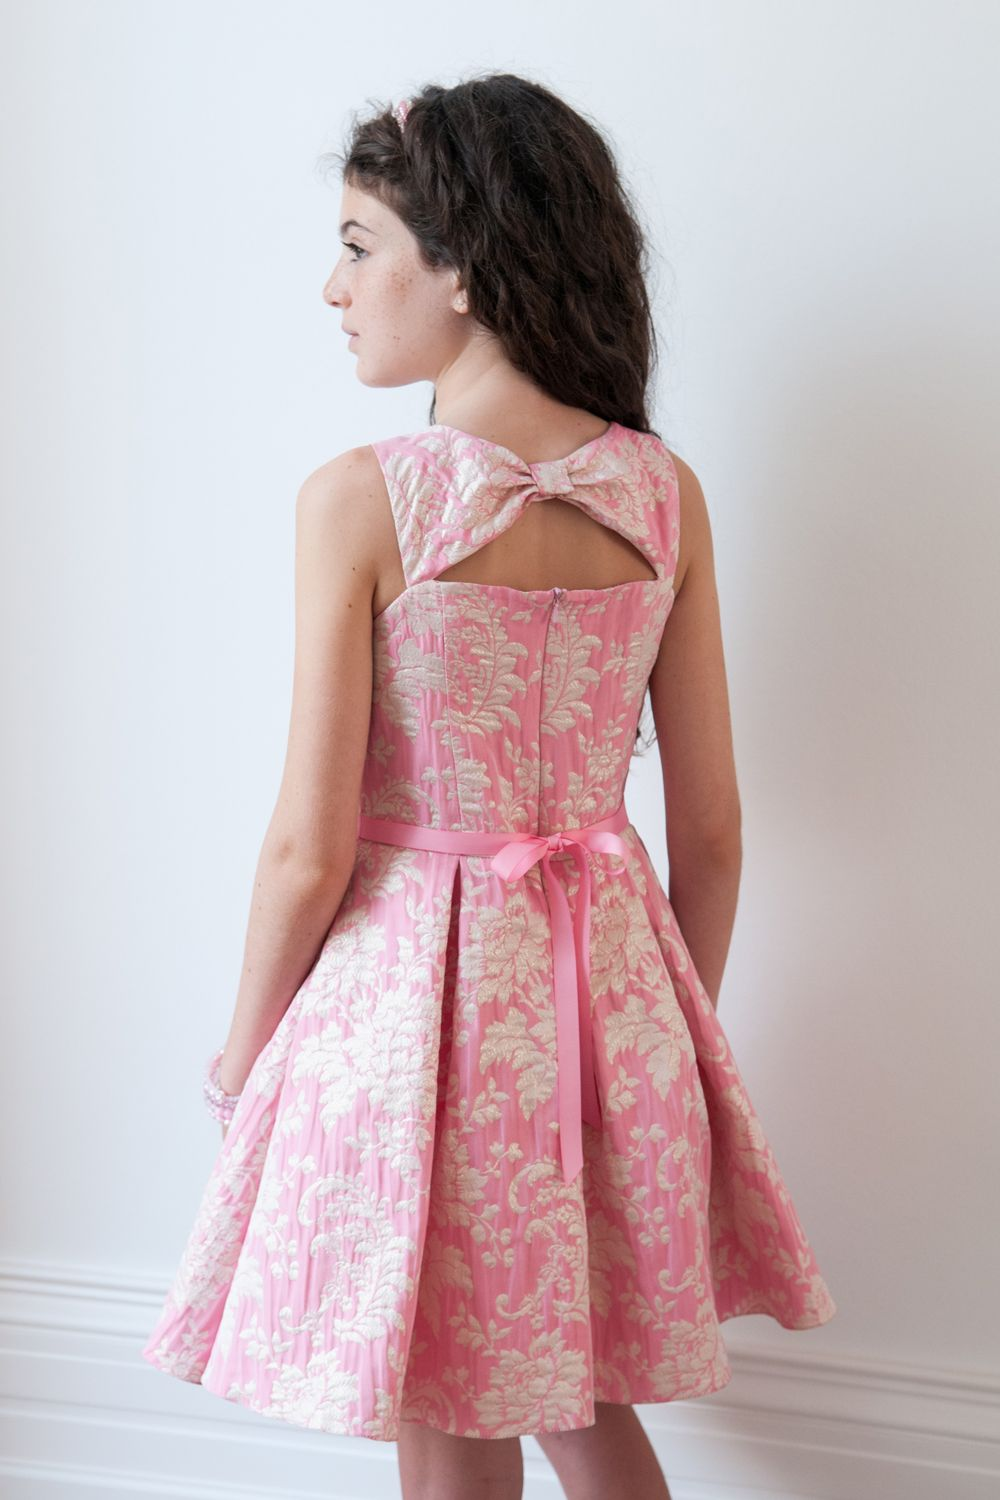 Presenting this pink dream prom dress for girls from David